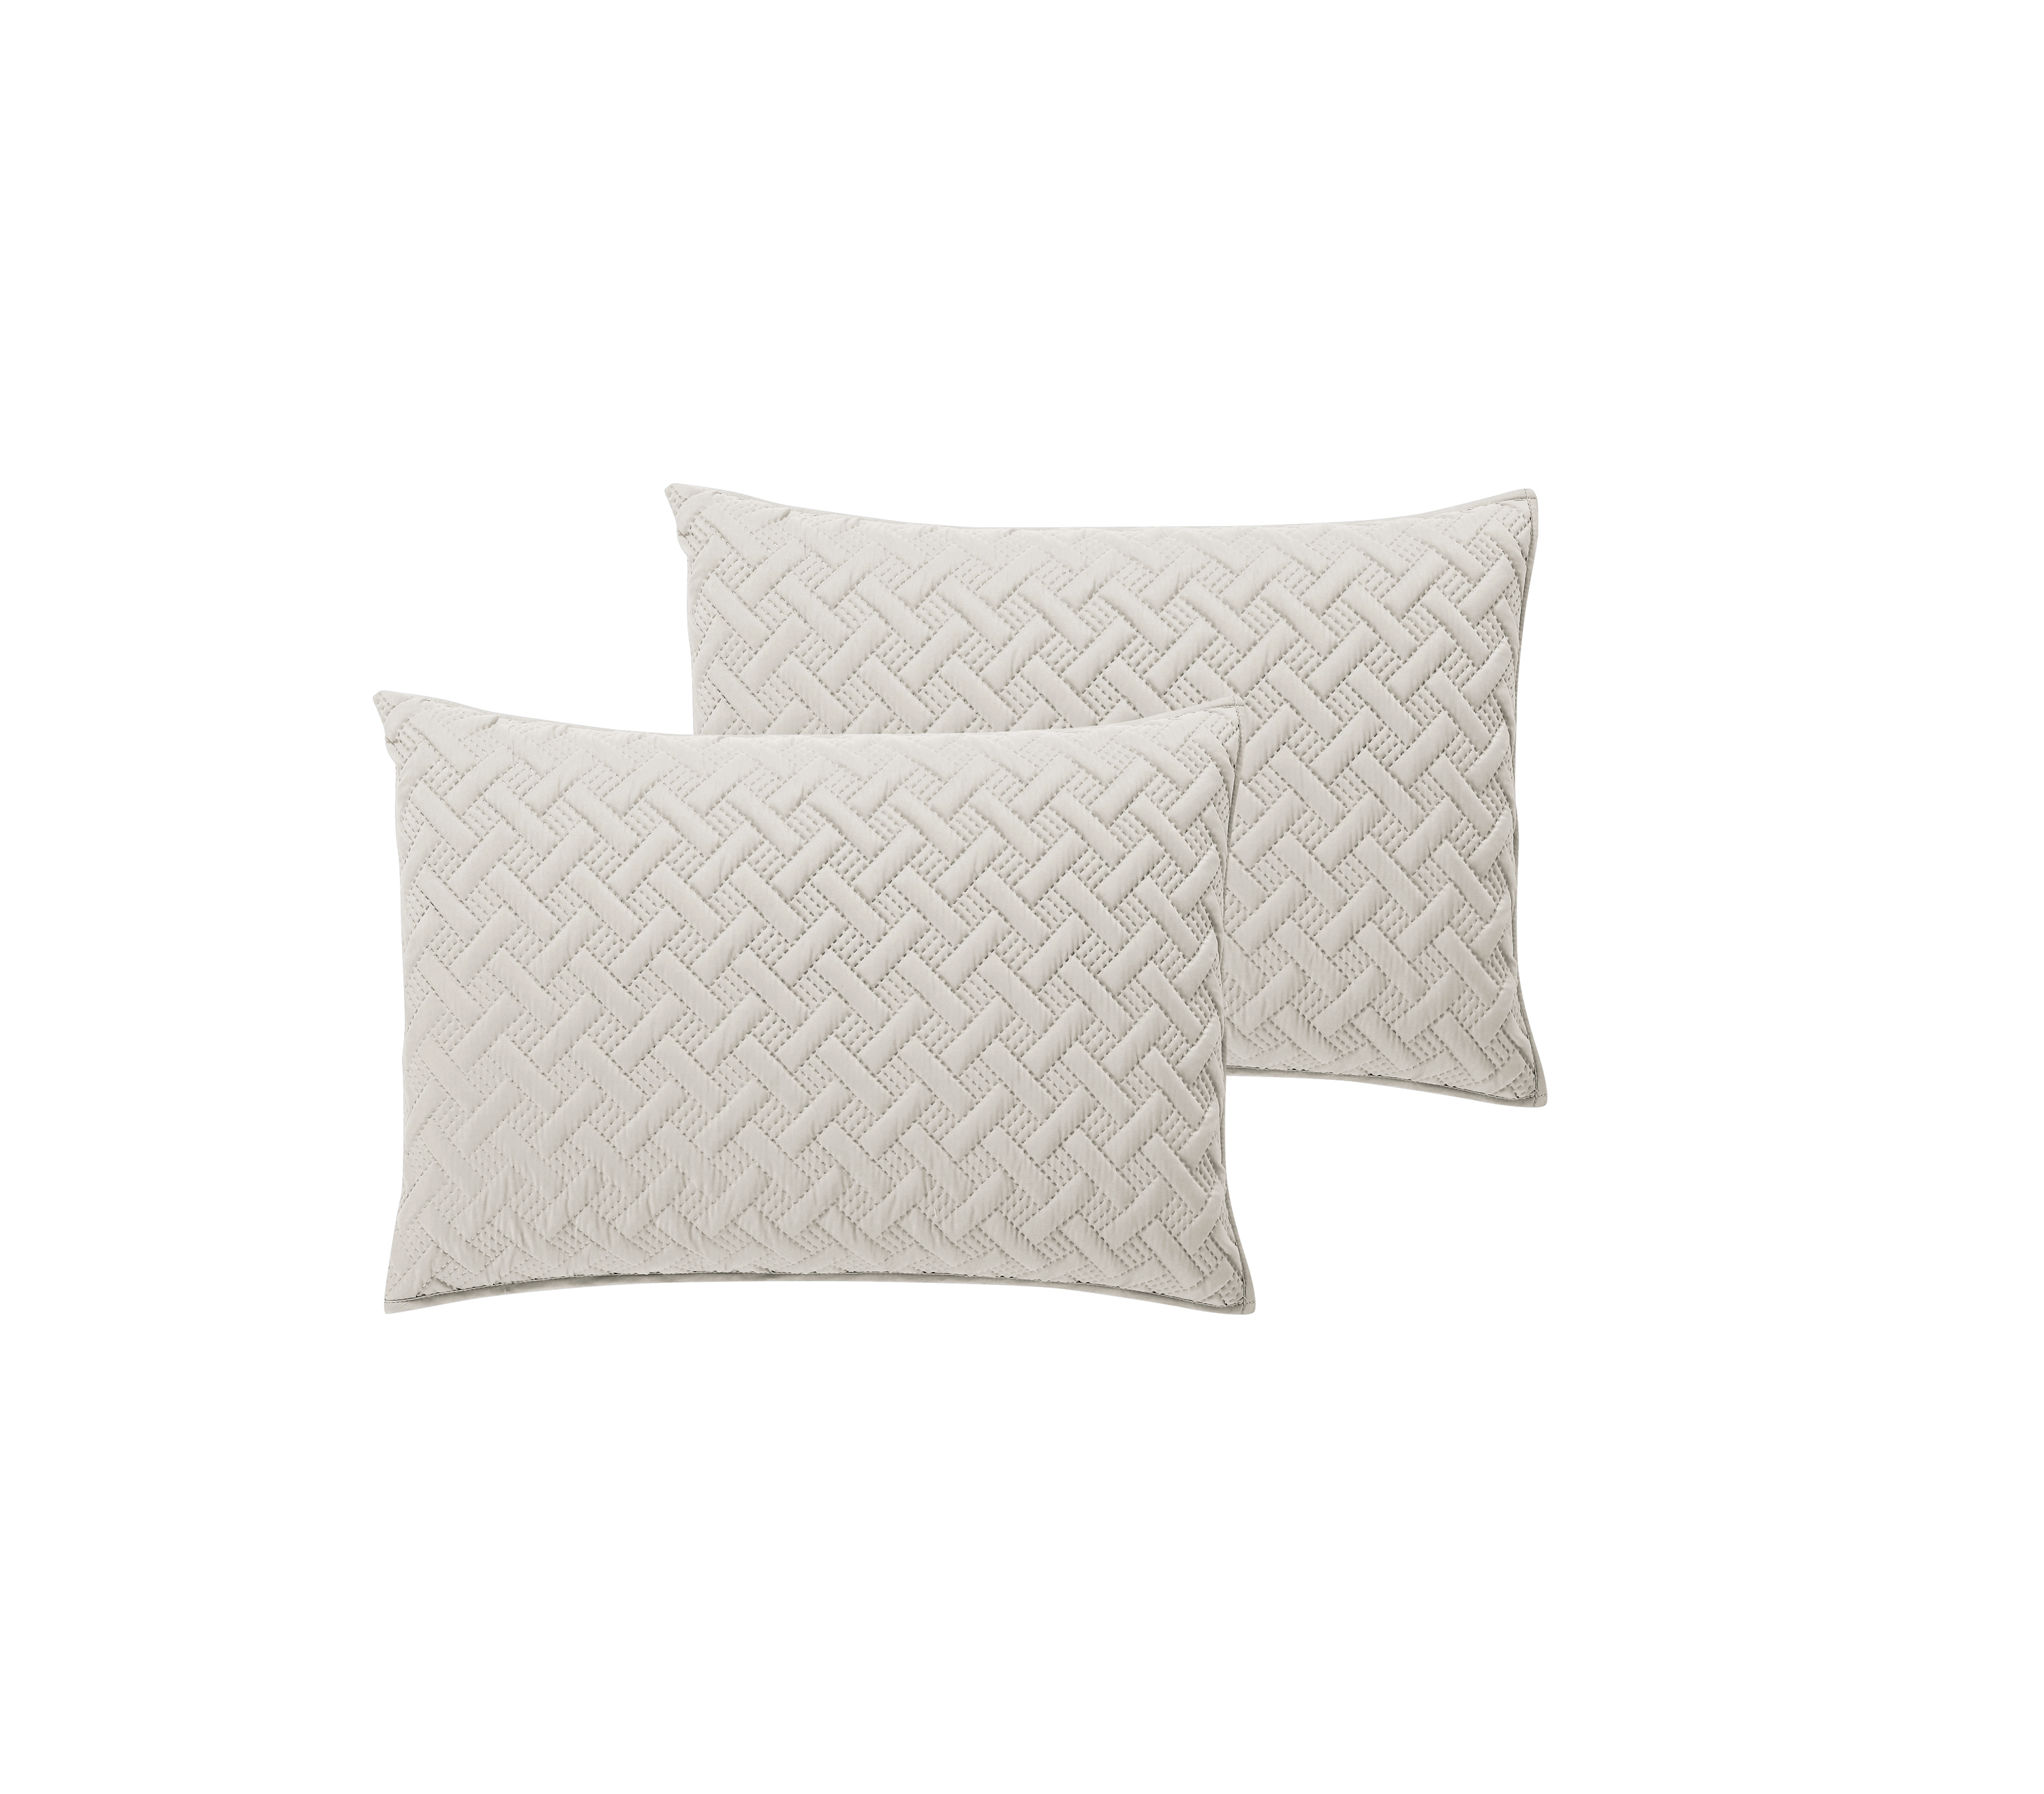 Mainstays Vanilla Emma Solid Basketweave Quilt and Shams by VCNY Home